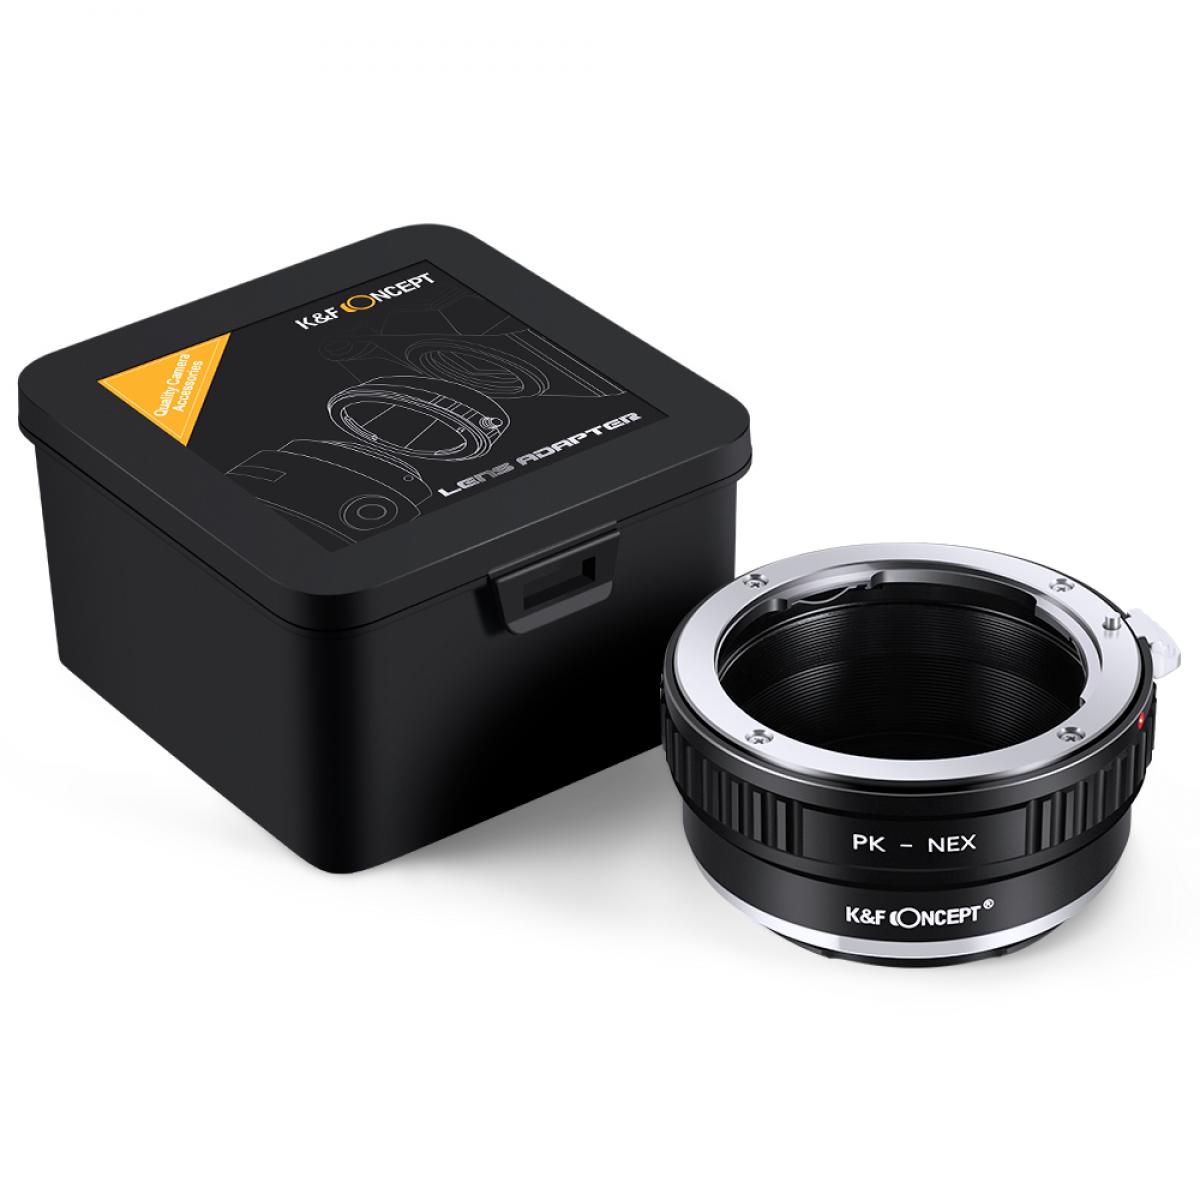 K&F Concept PK K Mount Lens to Sony NEX E-Mount Lens Adapter, Compatible with Sony NEX-3 NEX-3C NEX-3N NEX-5 NEX-5C NEX-5N NEX-5R NEX-5T NEX-6 NEX-7 NEX-F3 NEX-VG10 VG20